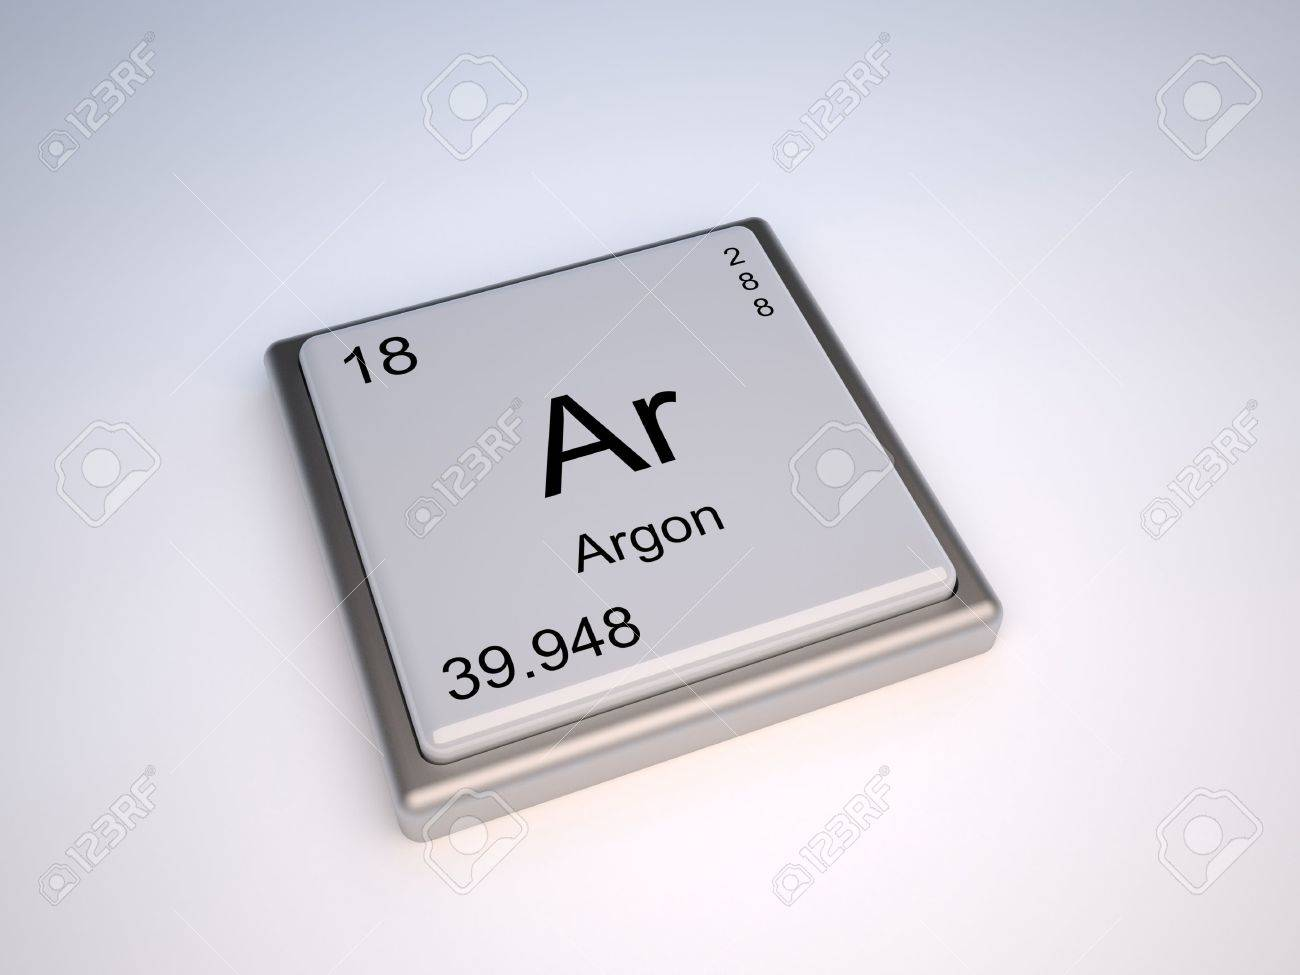 Argon chemical element of the periodic table with symbol ar stock argon chemical element of the periodic table with symbol ar stock photo 9257044 urtaz Image collections